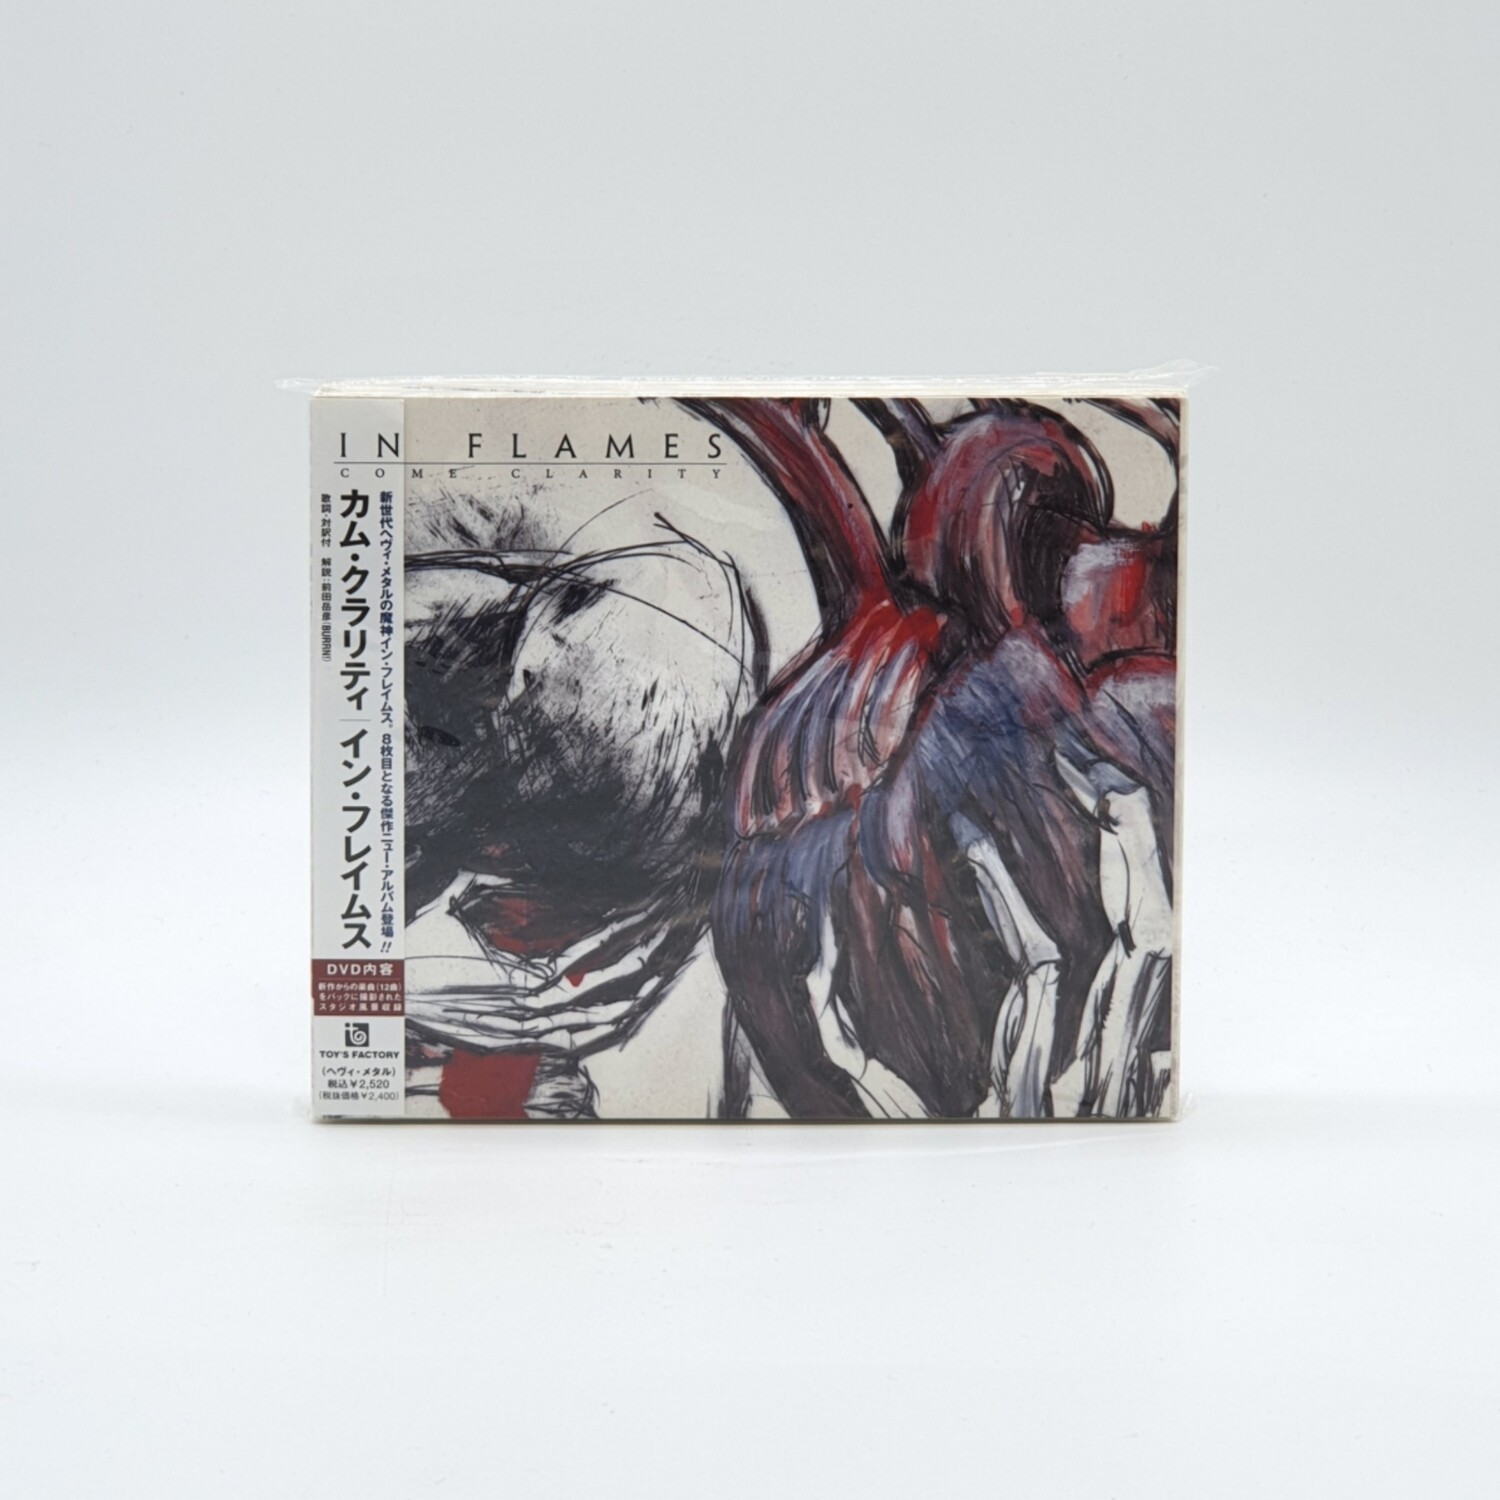 IN FLAMES -COME CLARITY- CD (JAPAN PRESS)